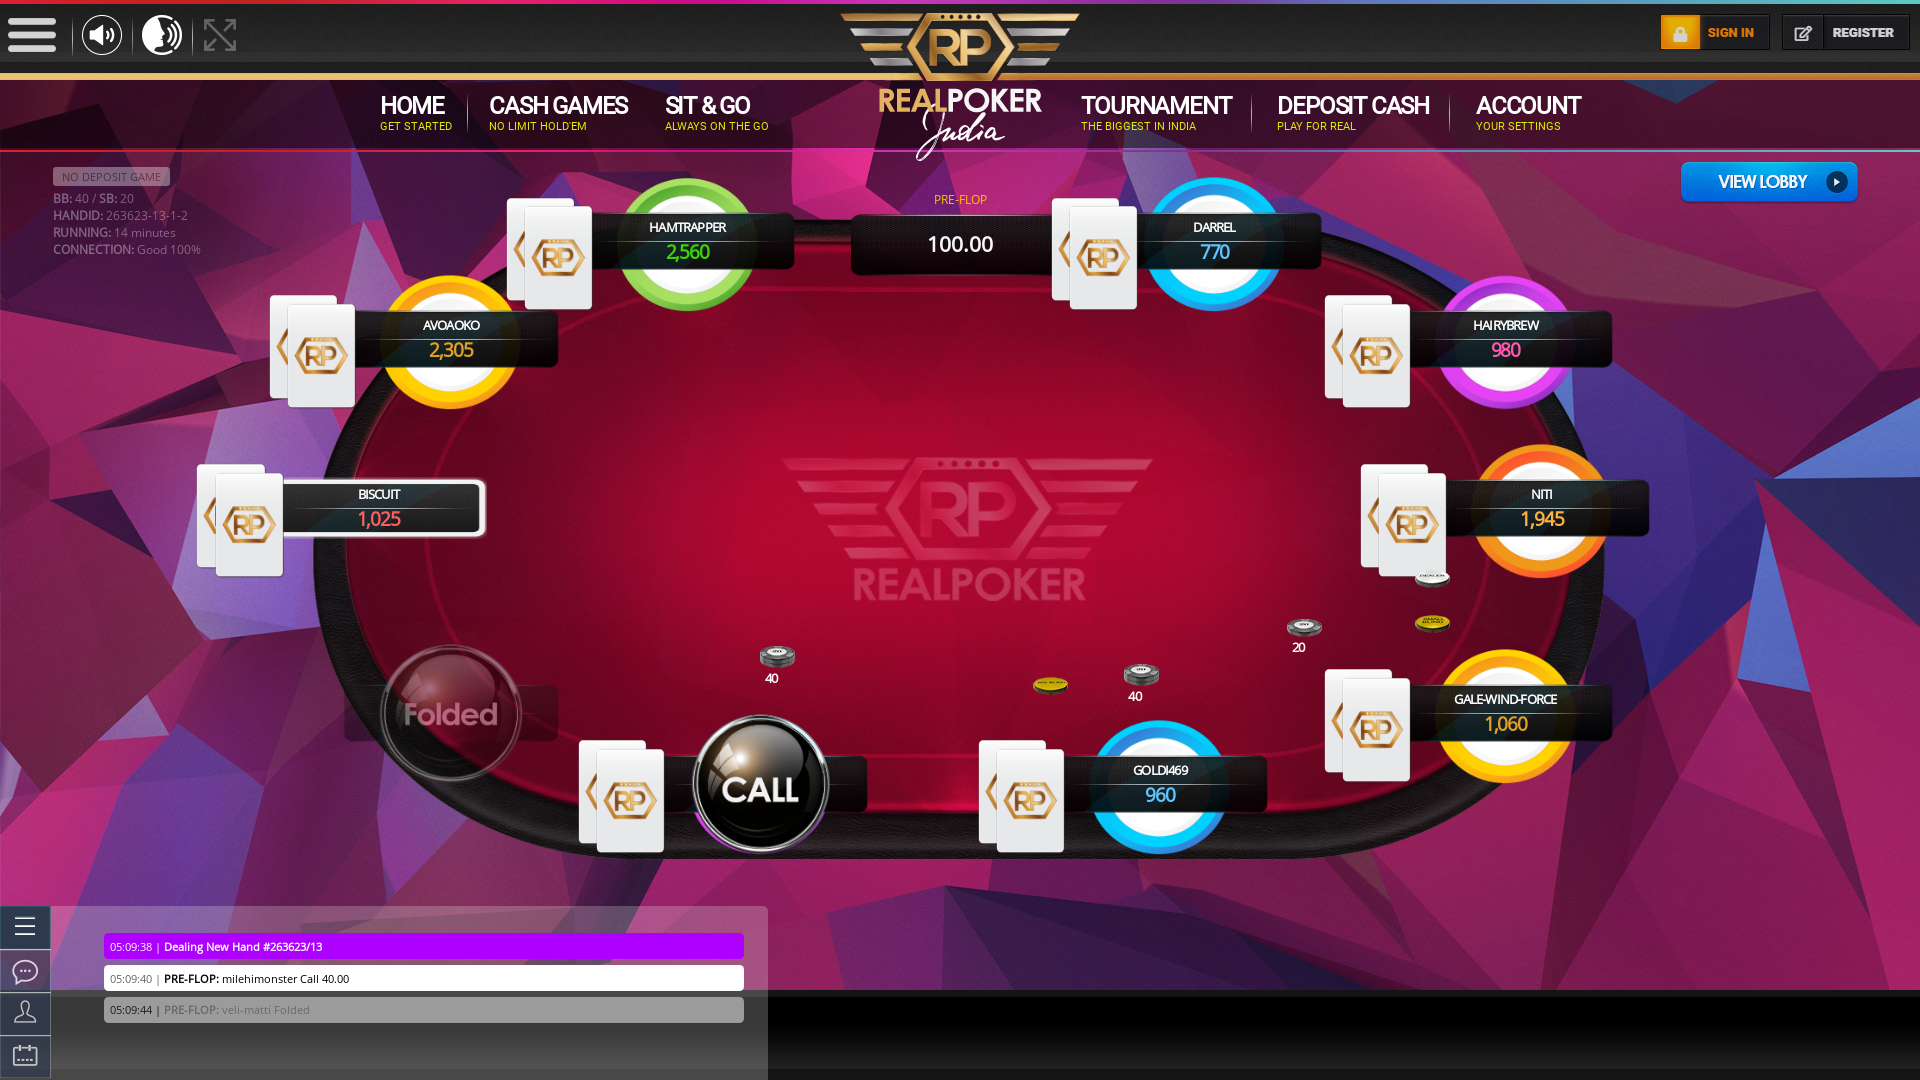 Gwalior Poker Website from November